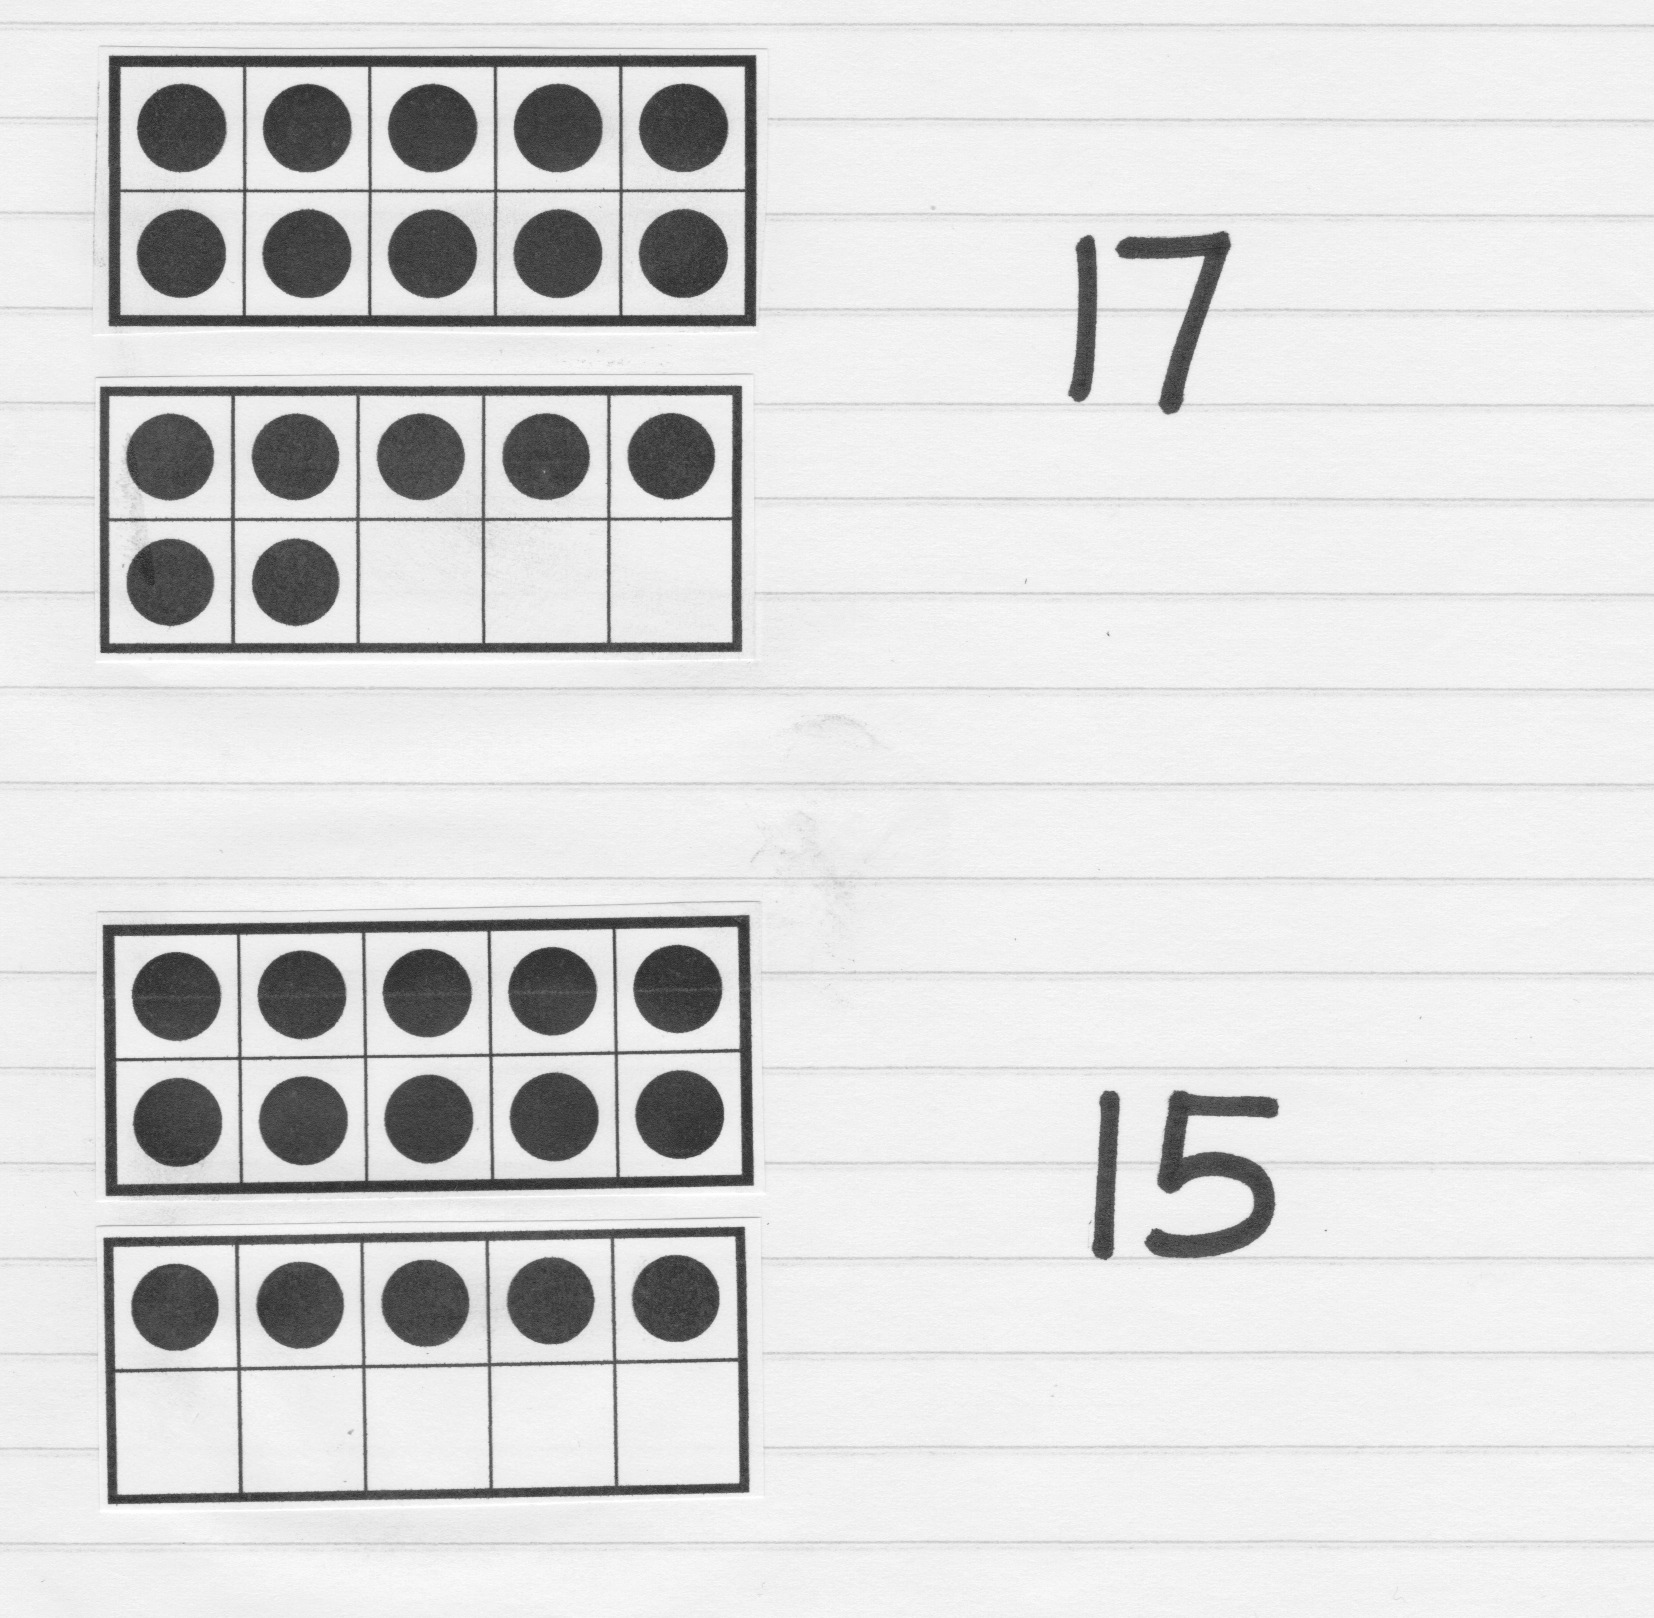 write a few numbers for your child and have them build the number by glueing the ten frame cards in their workbook to show the number